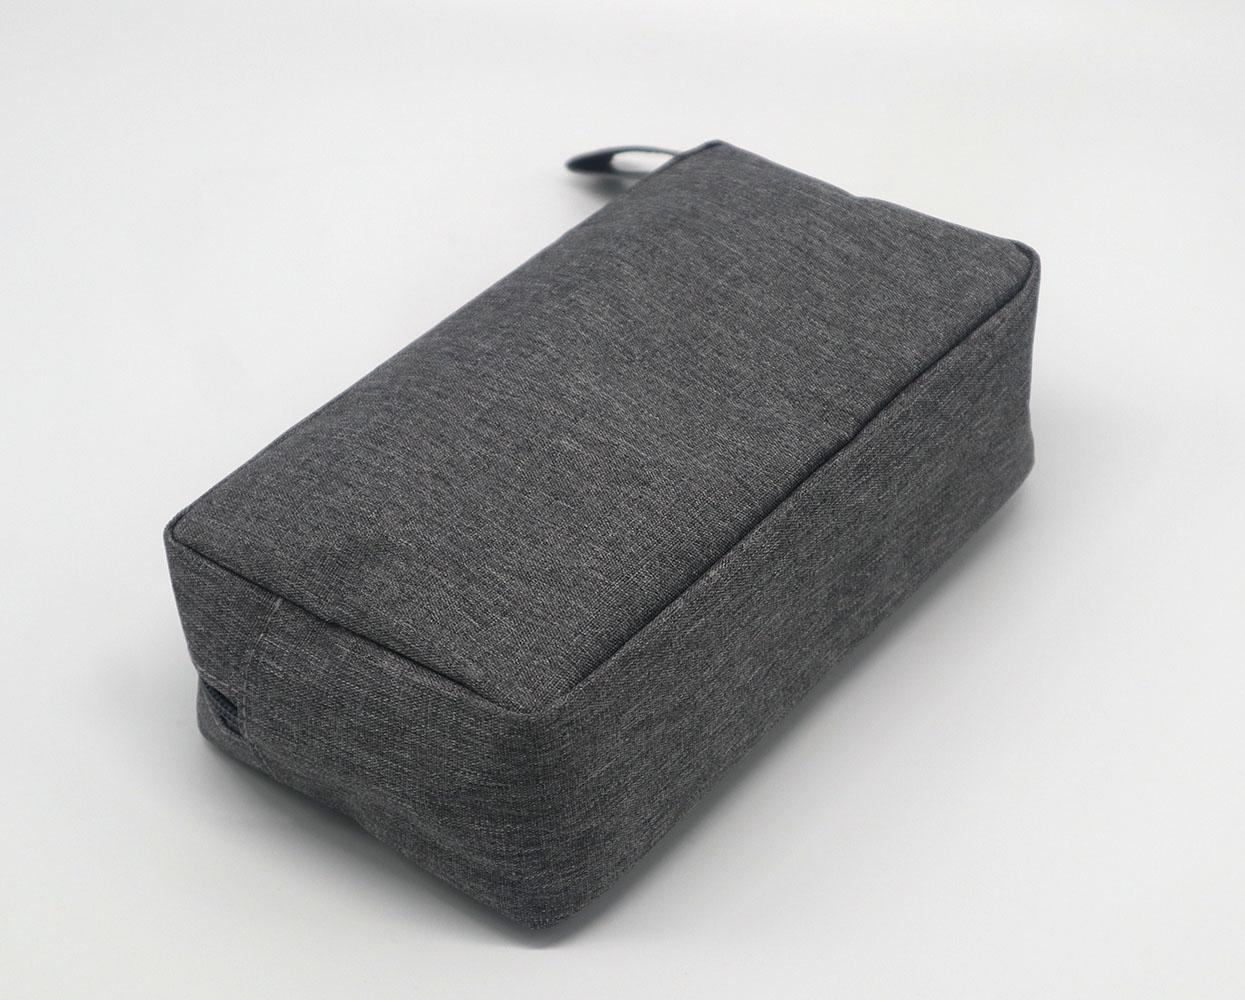 Promotion gift cheap men toiletry bag grey colour polyester made 5